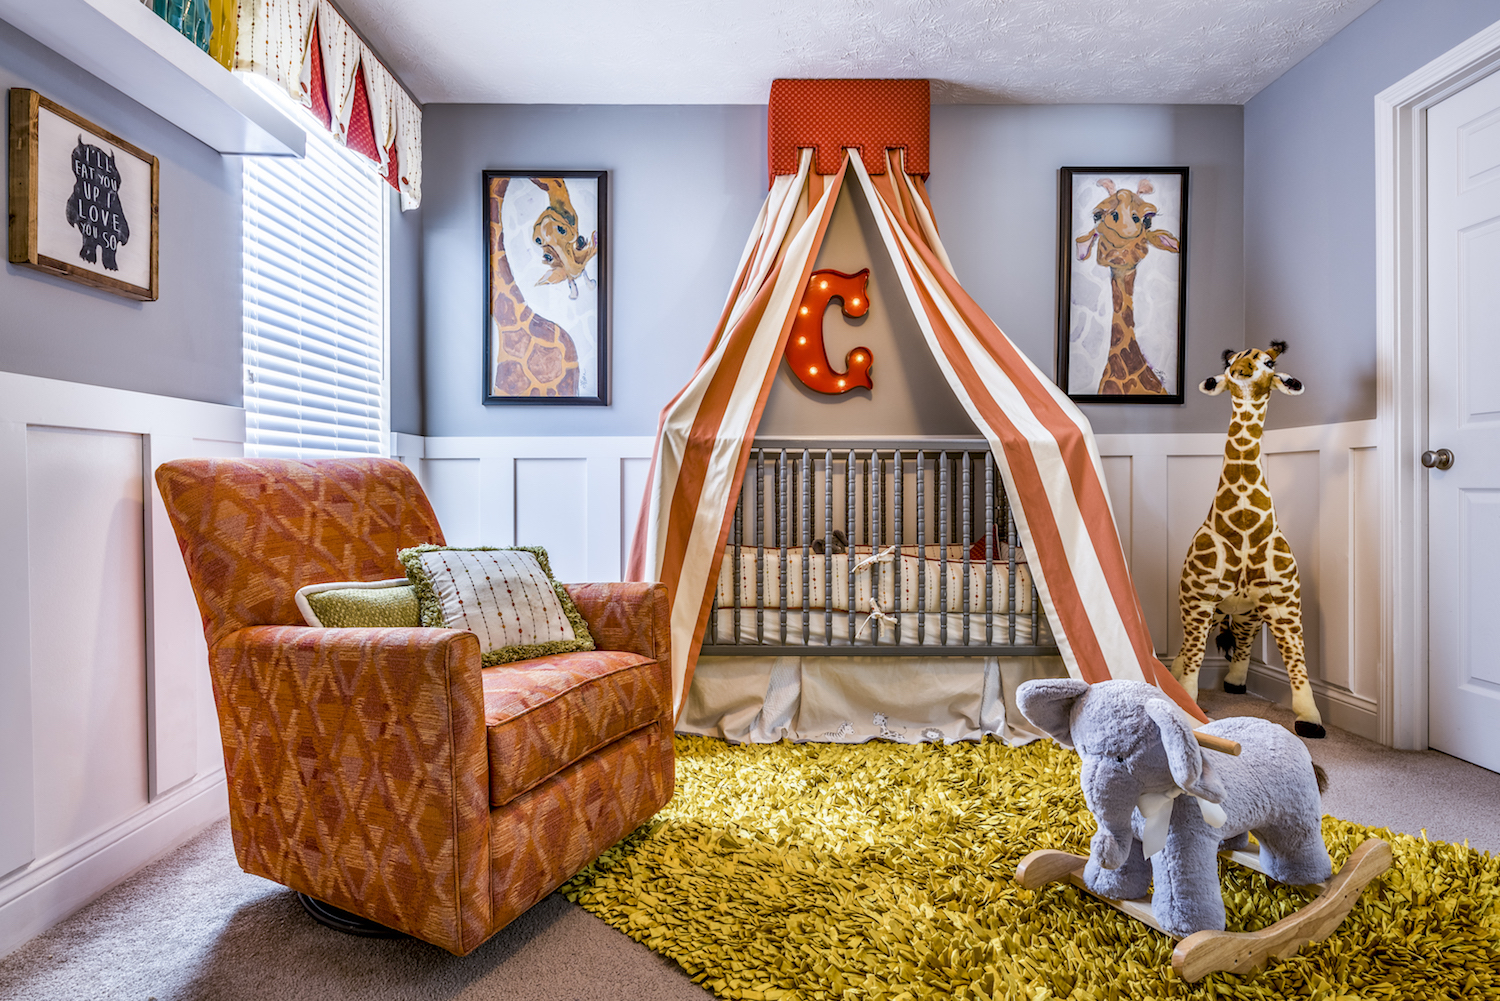 Architectural Interior, Residential Interior, Child's Bedroom